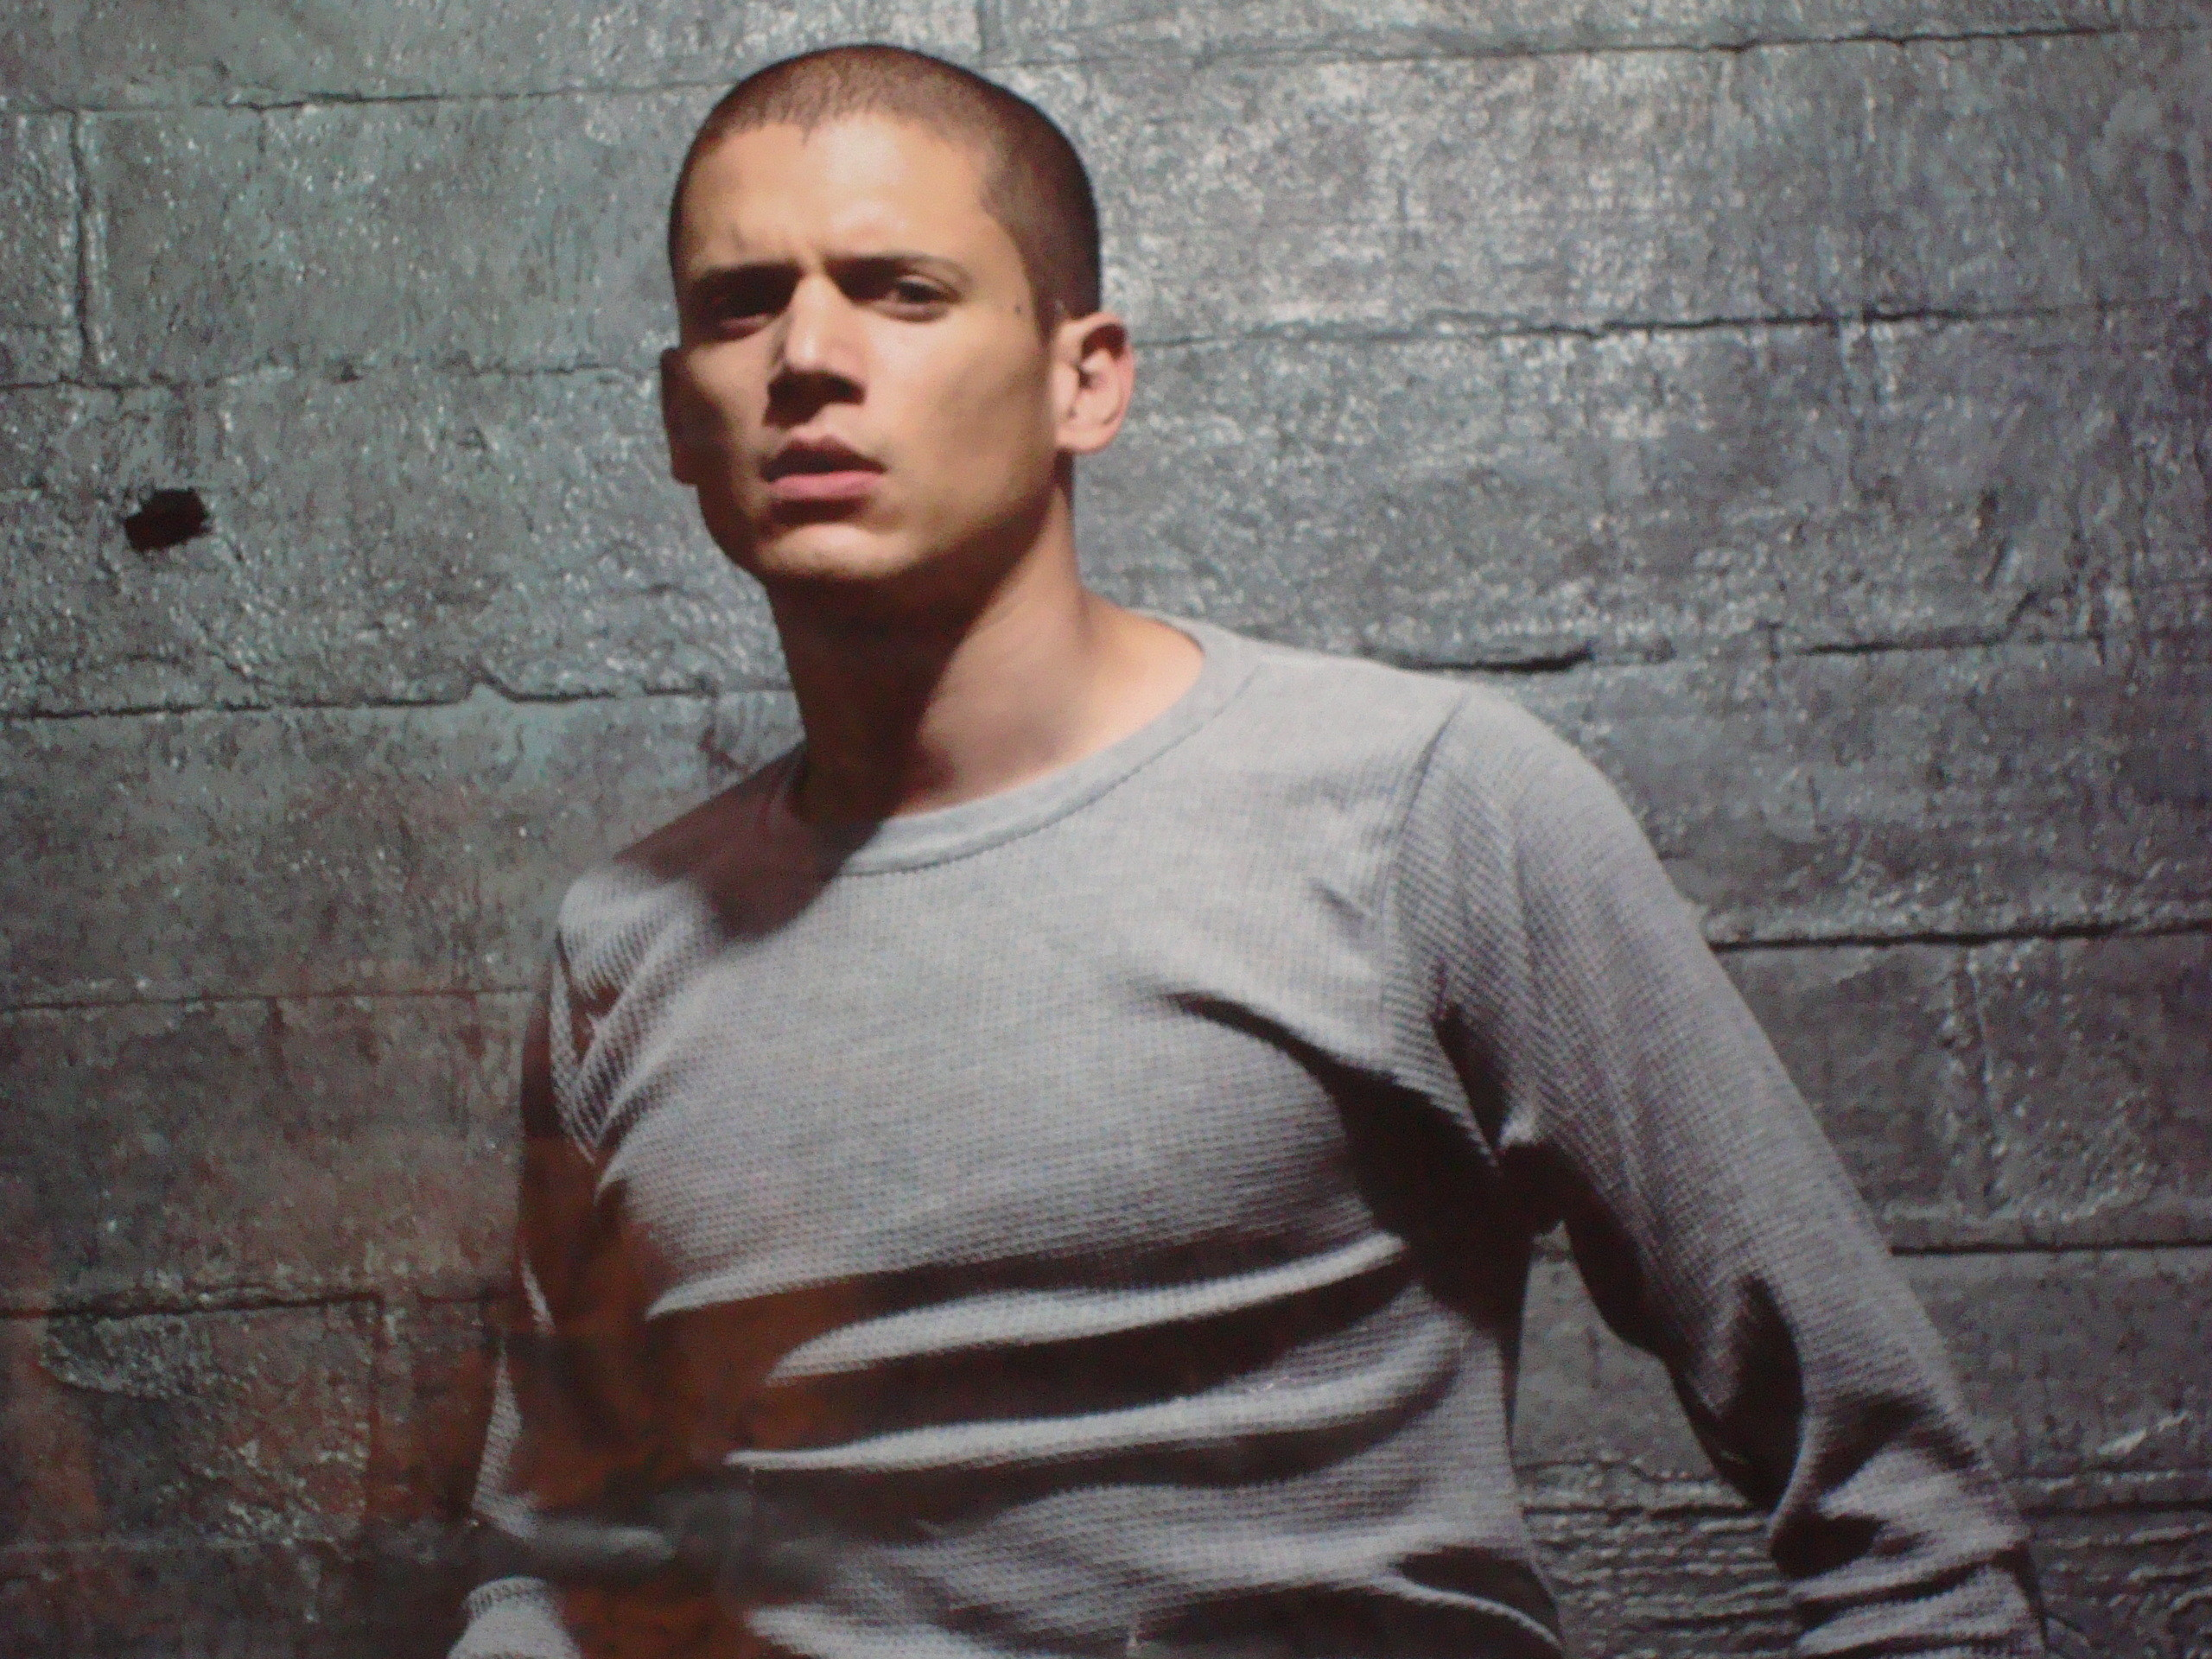 2560x1920 Wentworth Miller, Prison Break, Hd Wallpaper, Wallpapers, Dominic Purcell,  Screensaver, Stew, Google Search, Eyes